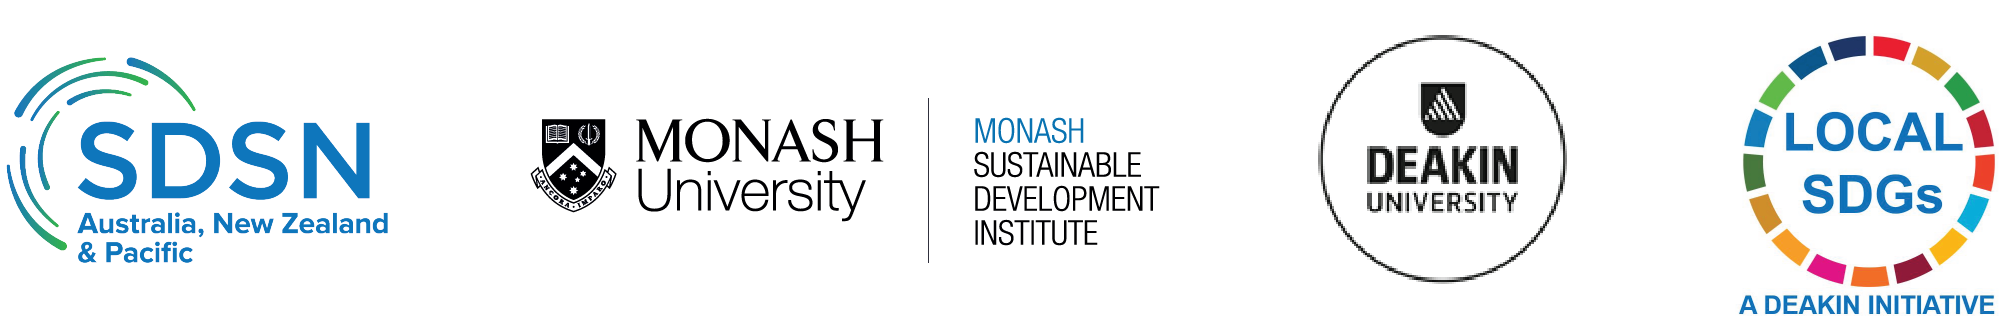 SDSN AusNZPac, Monash Sustainable Development Institute, Deakin University, The Local SDGs Program